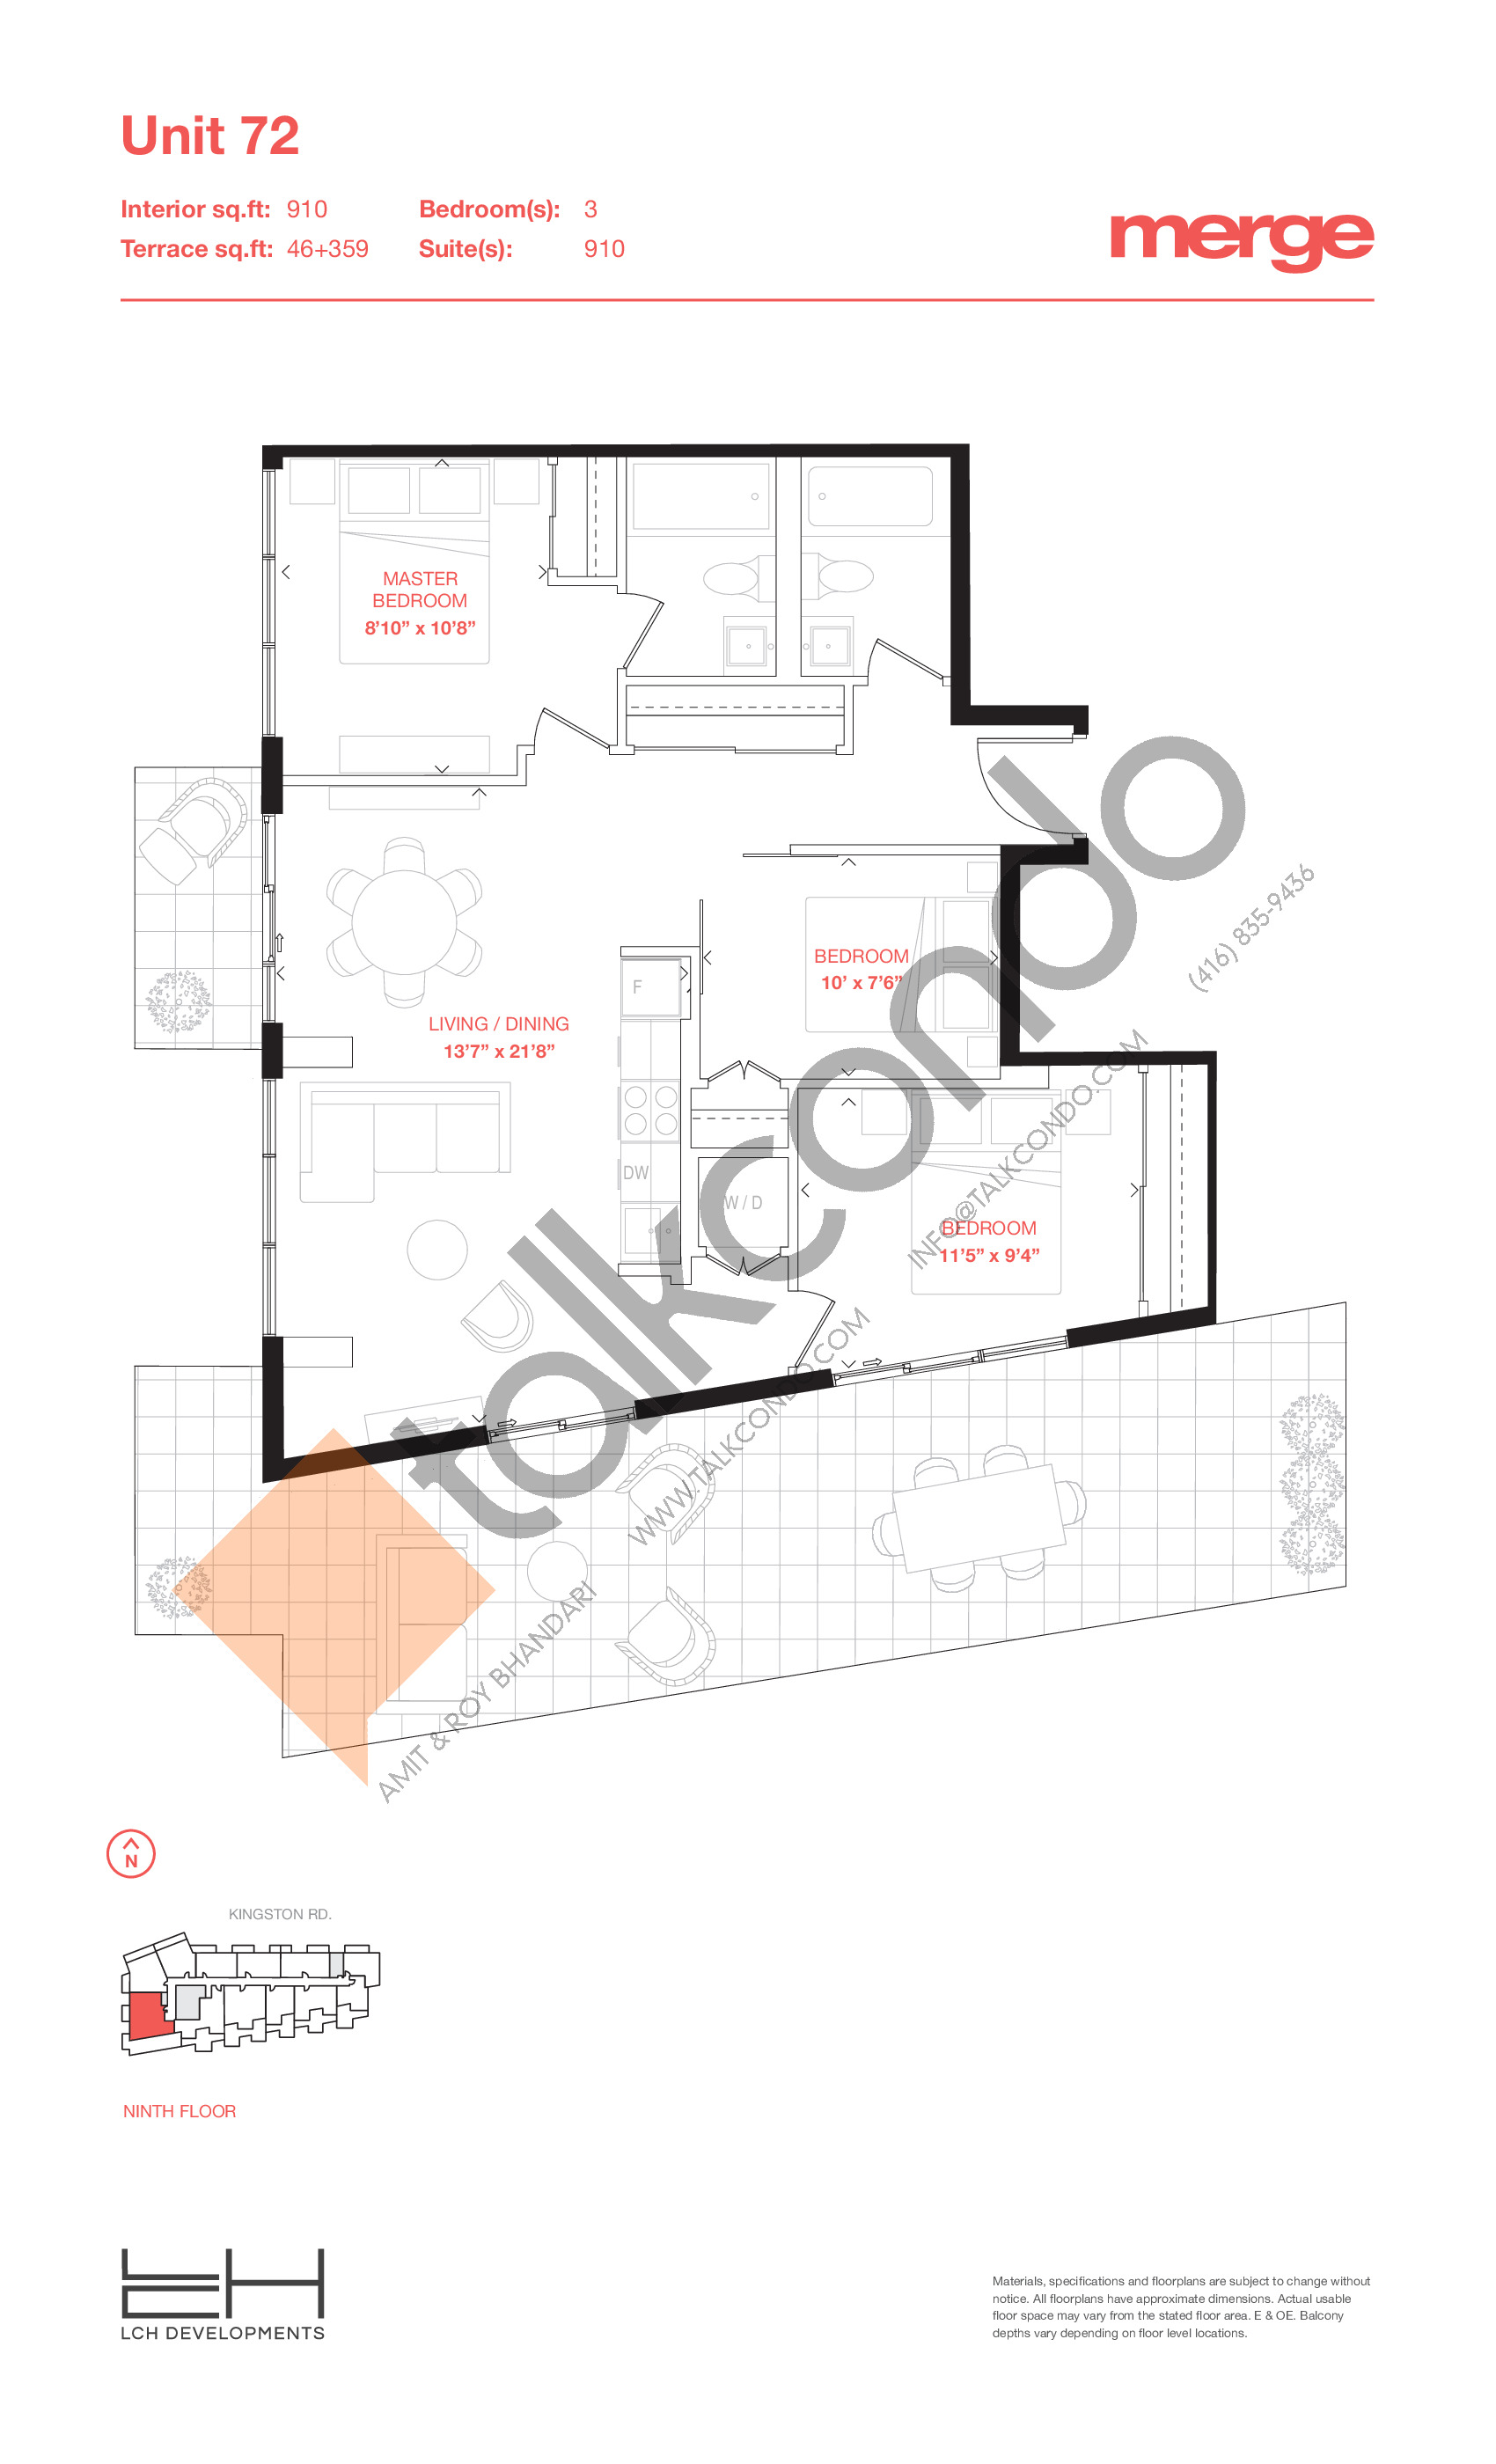 Unit 72 - Tower Floor Plan at Merge Condos - 910 sq.ft